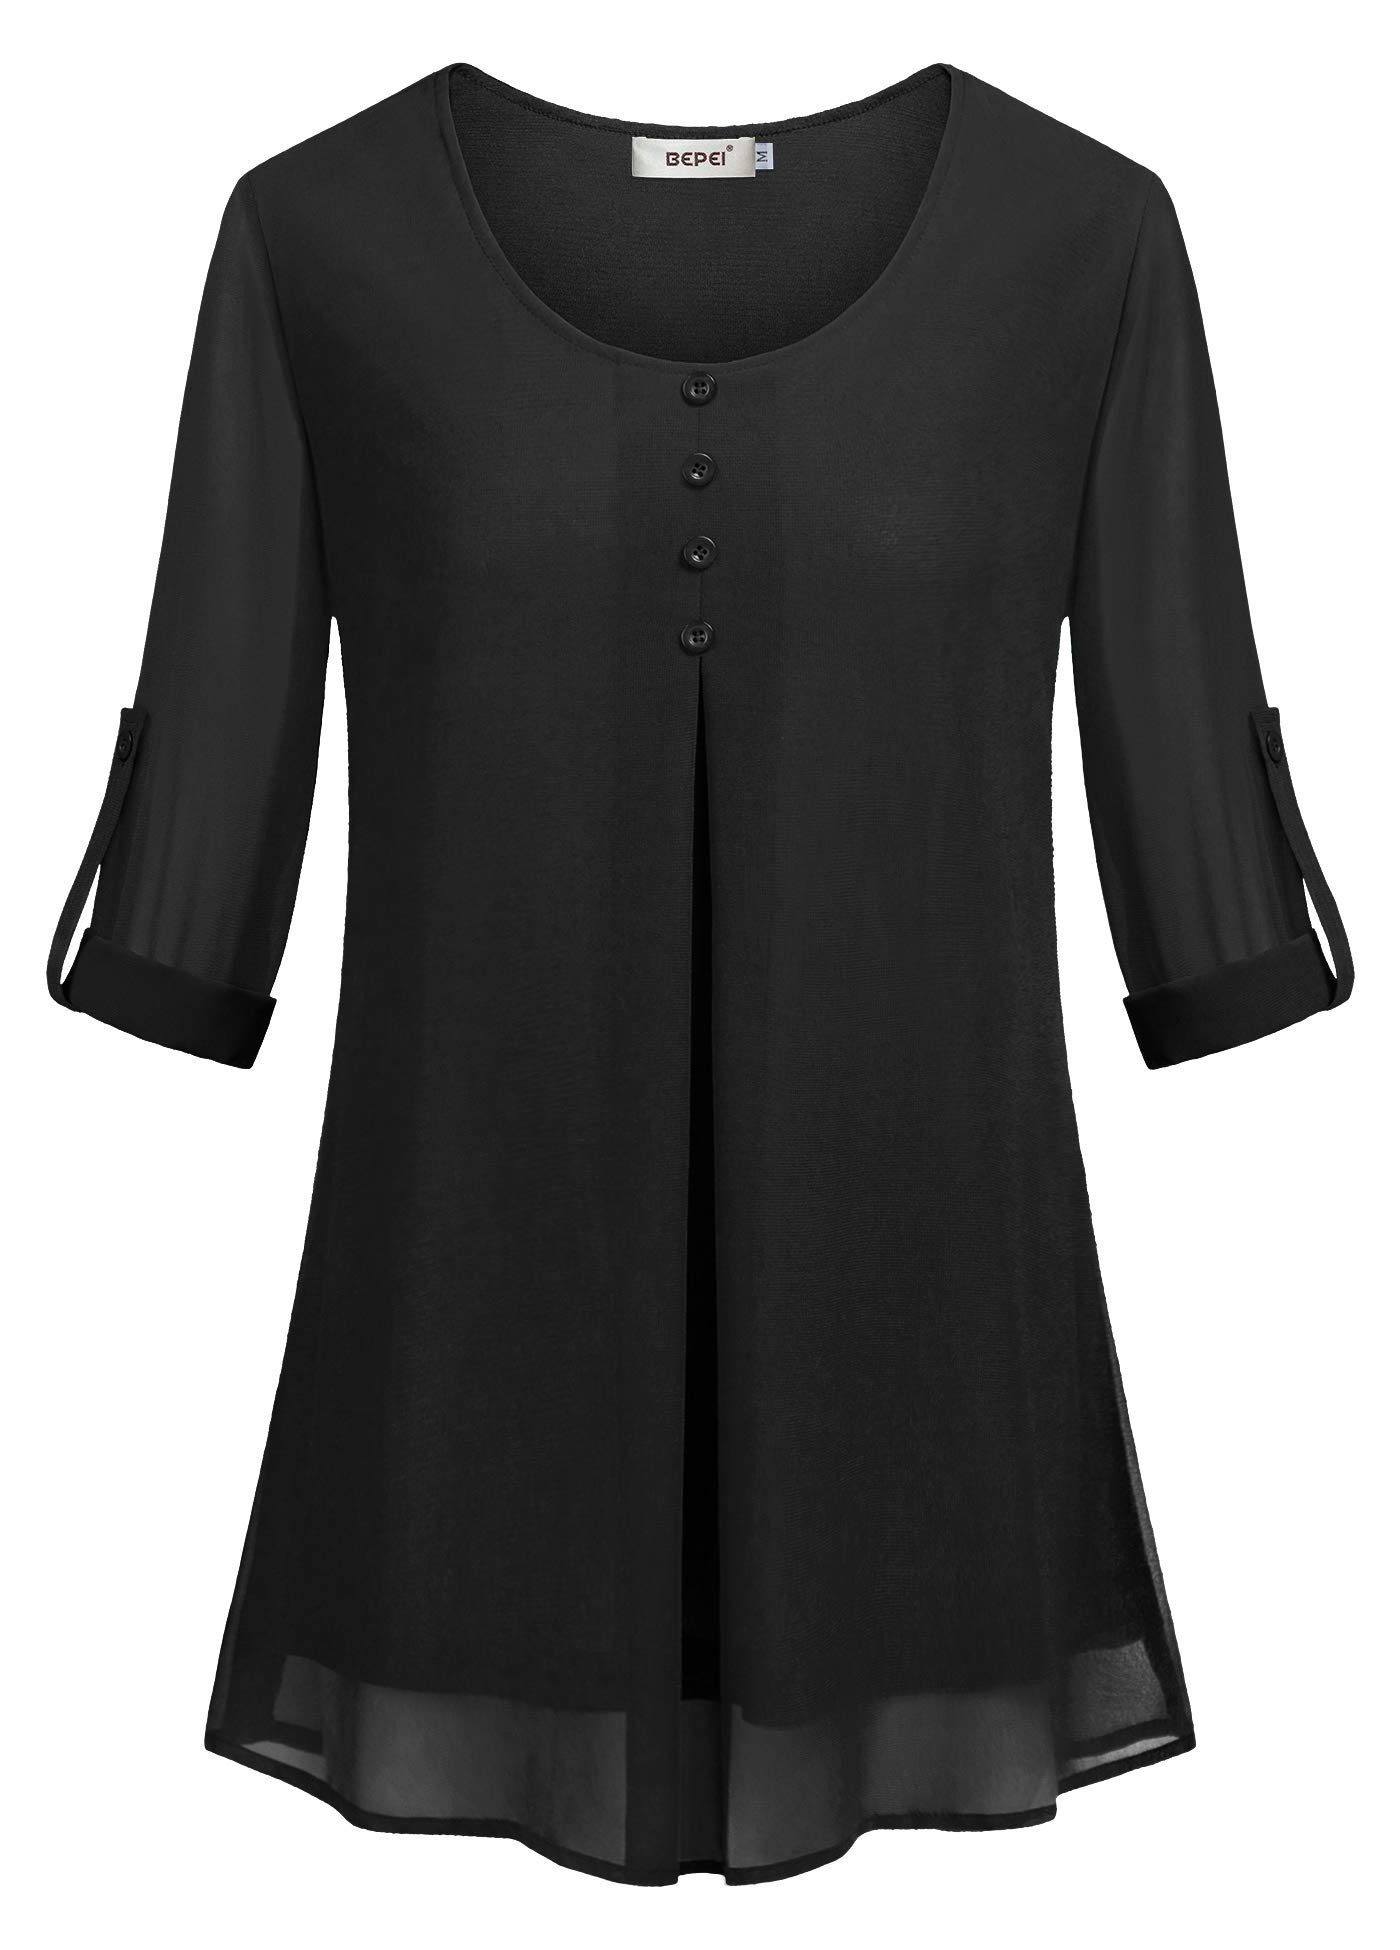 BEPEI Womens Tops and Blouses,Misses 3 4 Cuffed Sleeve Casual Classy Double Layers Pleats Chiffon Tunics Soft Loose Fitted Snug Blouses Modern Dressy Button Trim Flows Shirts Boutique Clothing Black L